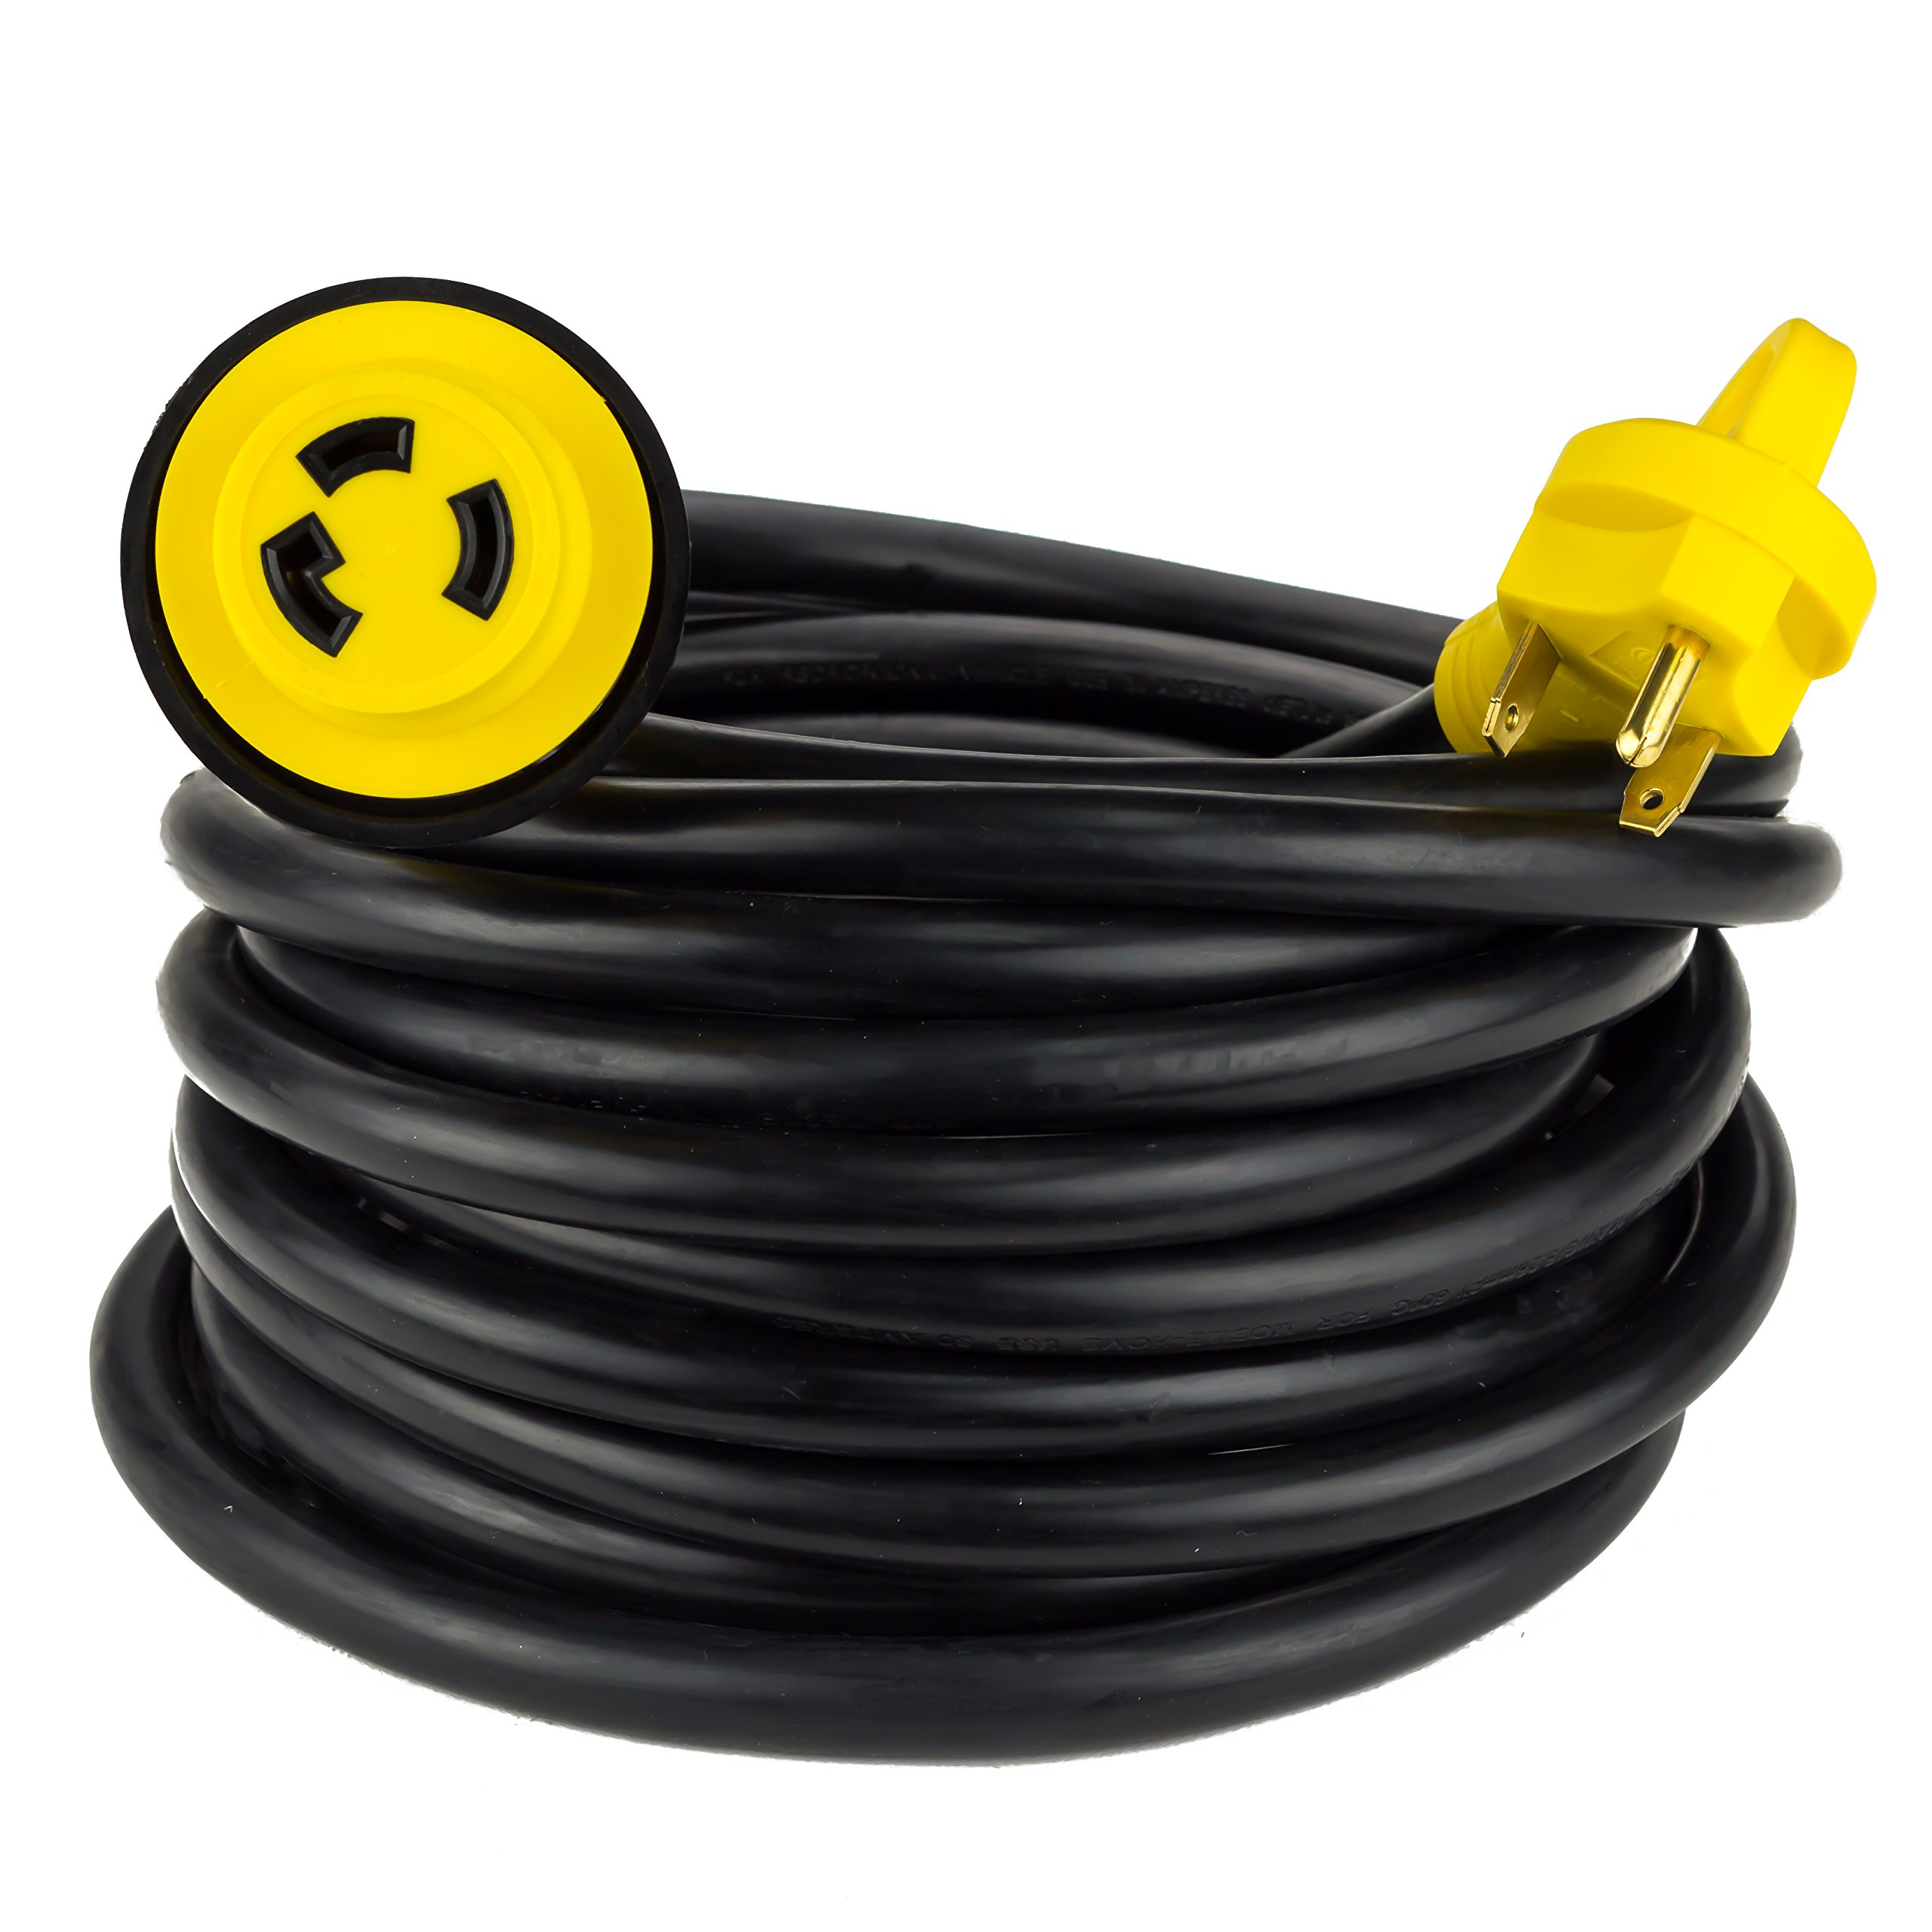 Proline Heavy Duty 25-FT 30AMP RV Power Extension Cord With Twist Lock Connector 10/3 STW